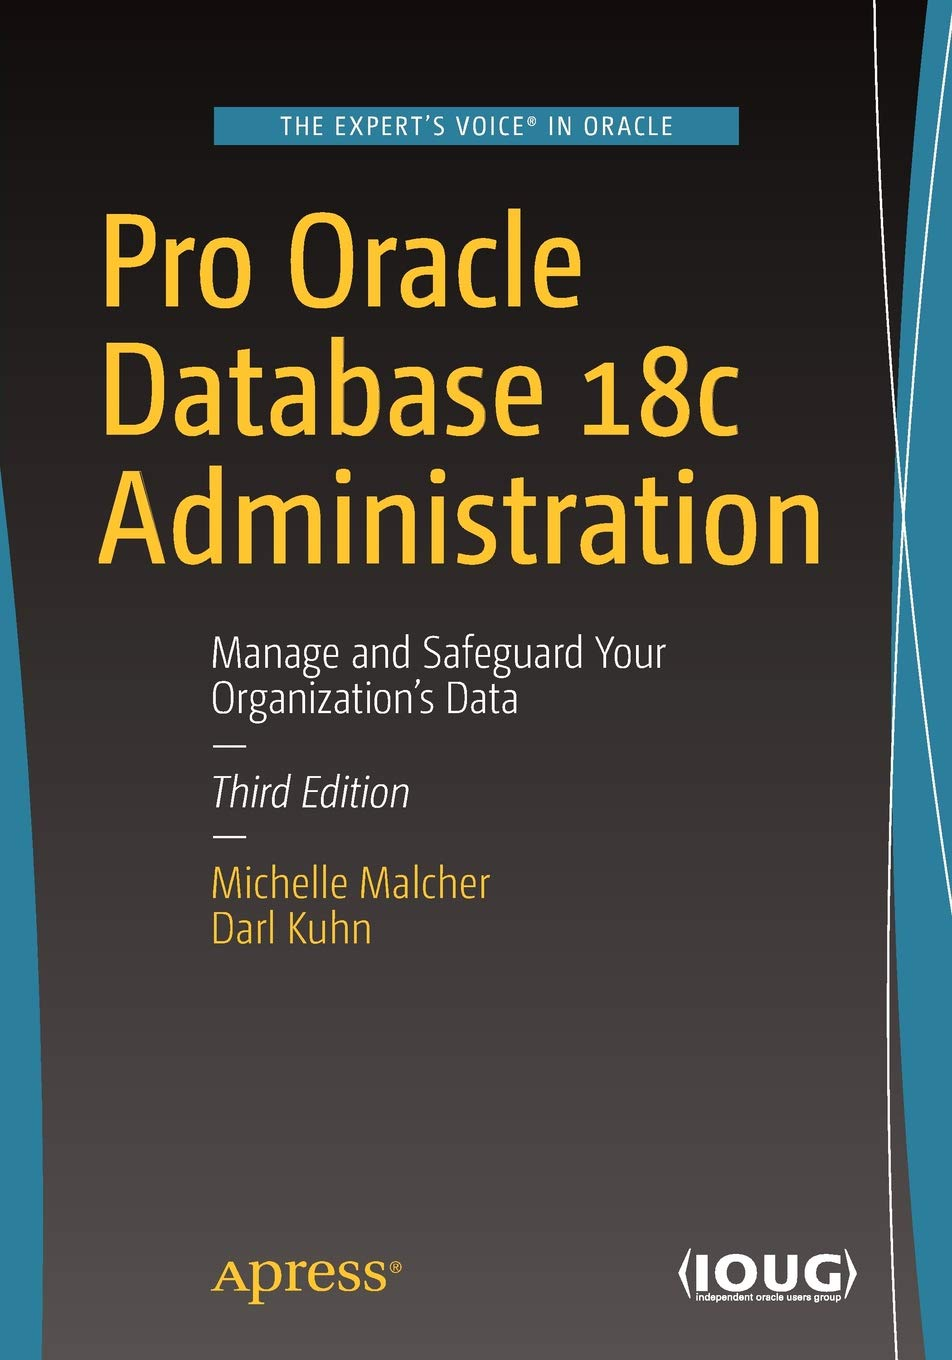 Pro Oracle Database 18c Administration: Manage and Safeguard Your Organization's Data